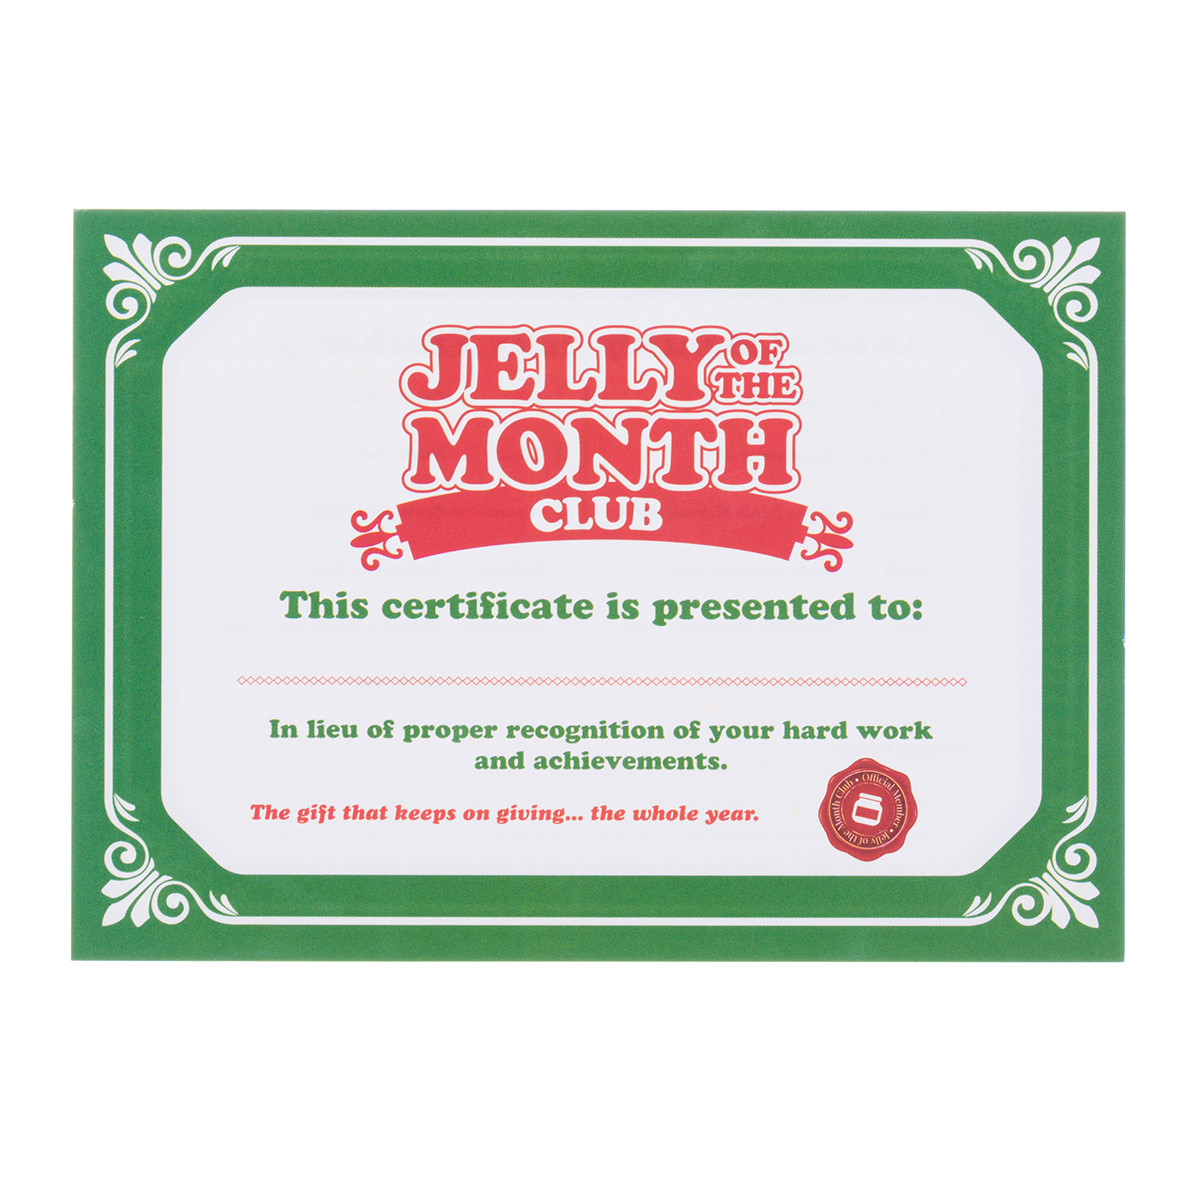 Christmas vacation griswold jelly of the month club retrofestive jelly of the month club certificate 1betcityfo Images